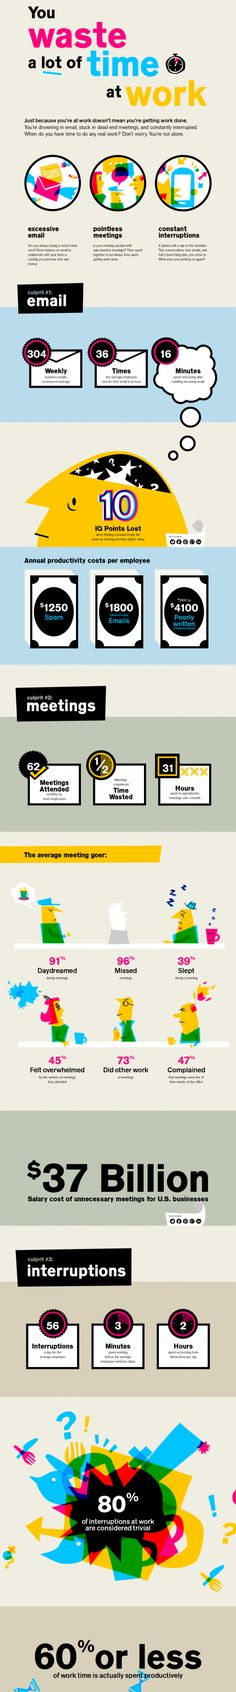 You Waste A Lot Of Time At Work - Infographic... good reminder.